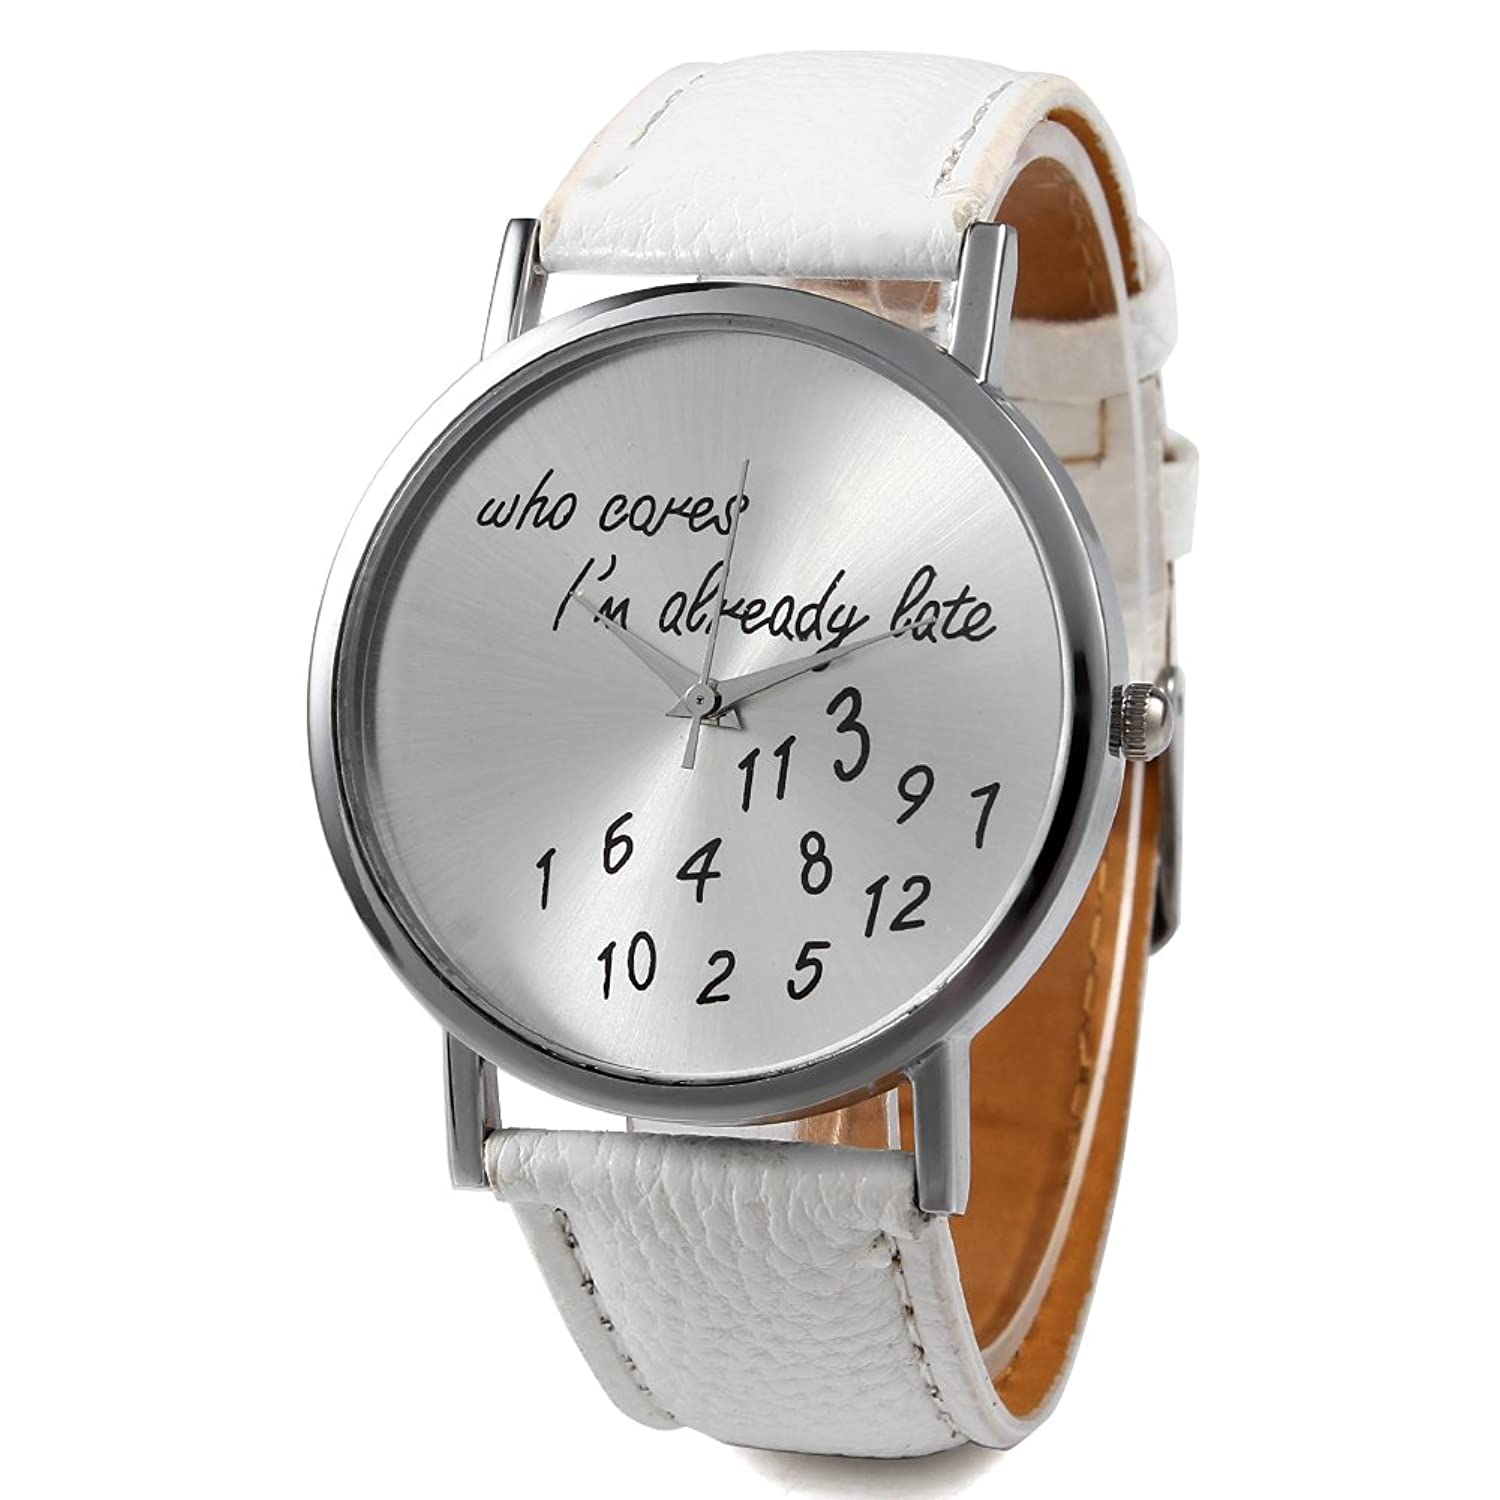 2013newestseller White New Fashion Funny Comment Women Men Wrist Watches, Who Cares Im Already Late